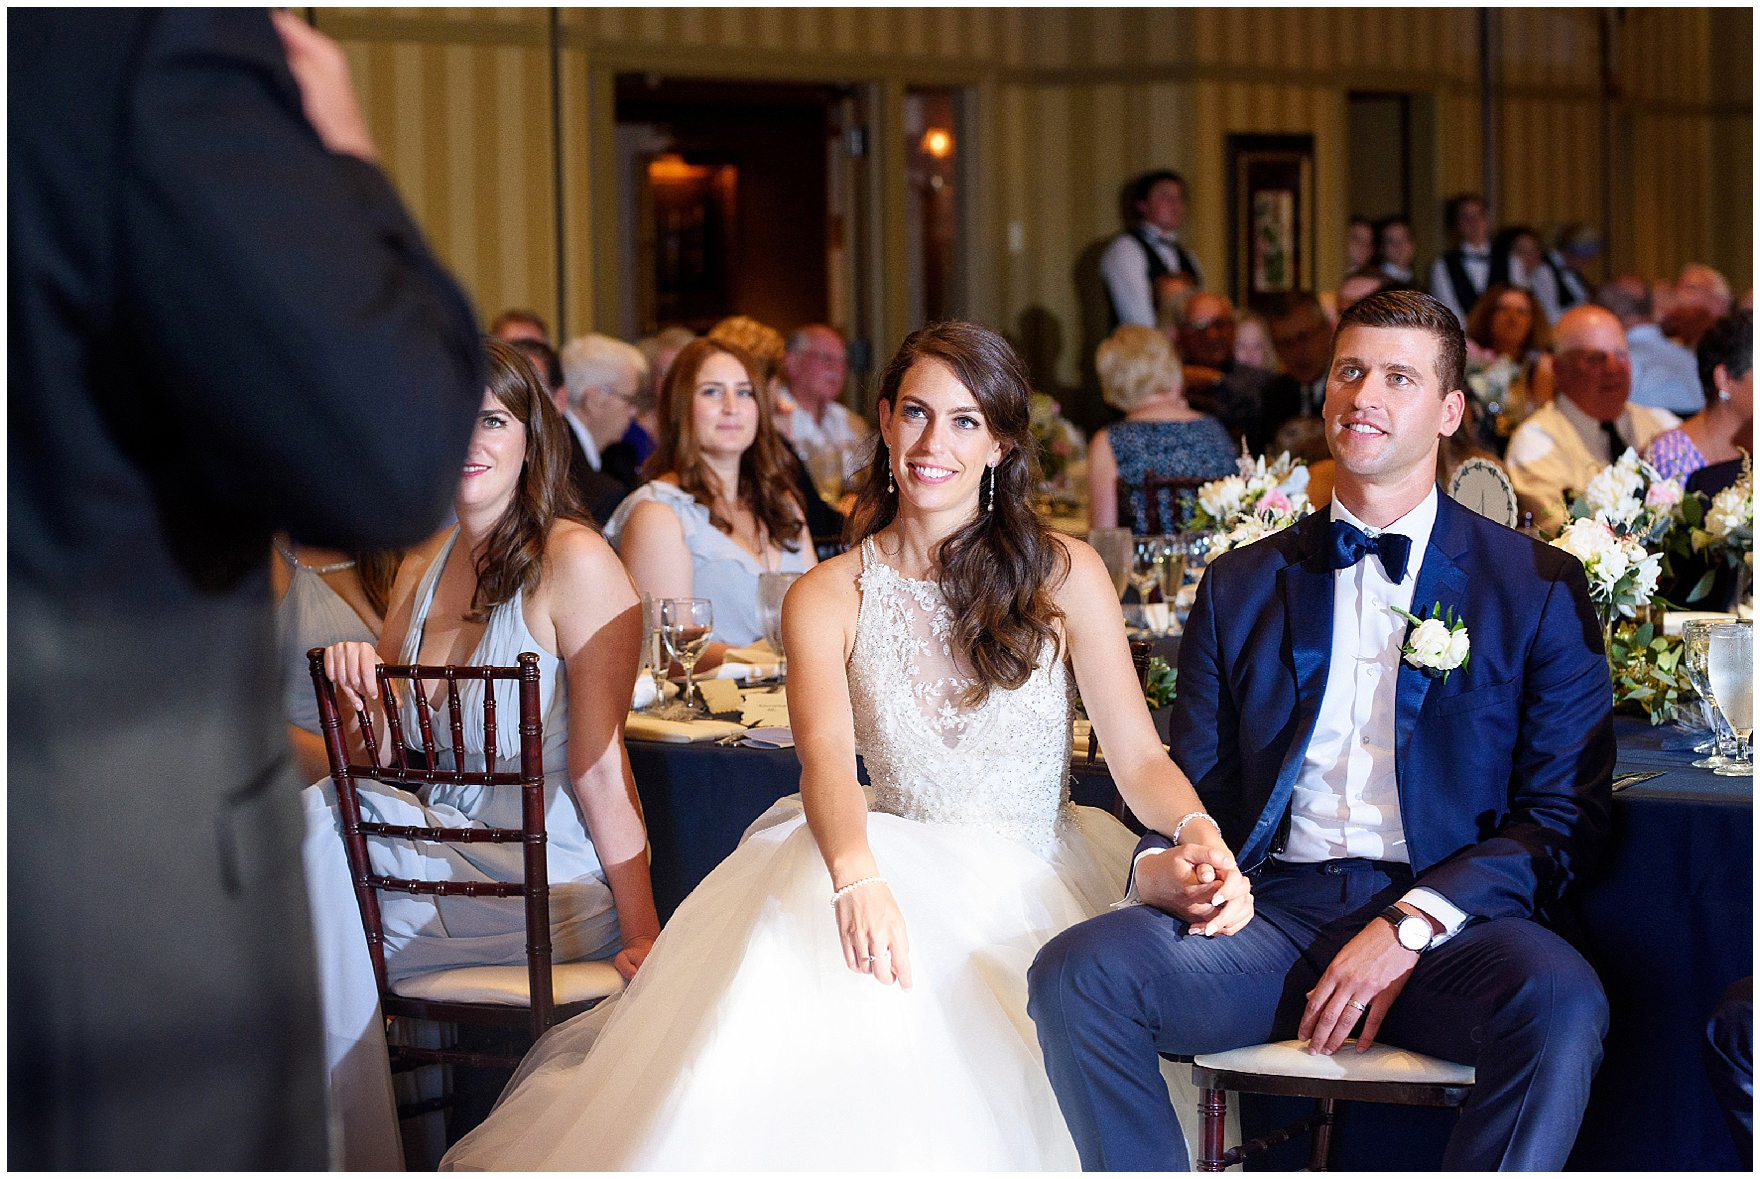 The bride and groom listen to speeches during a Biltmore Country Club Barrington wedding.